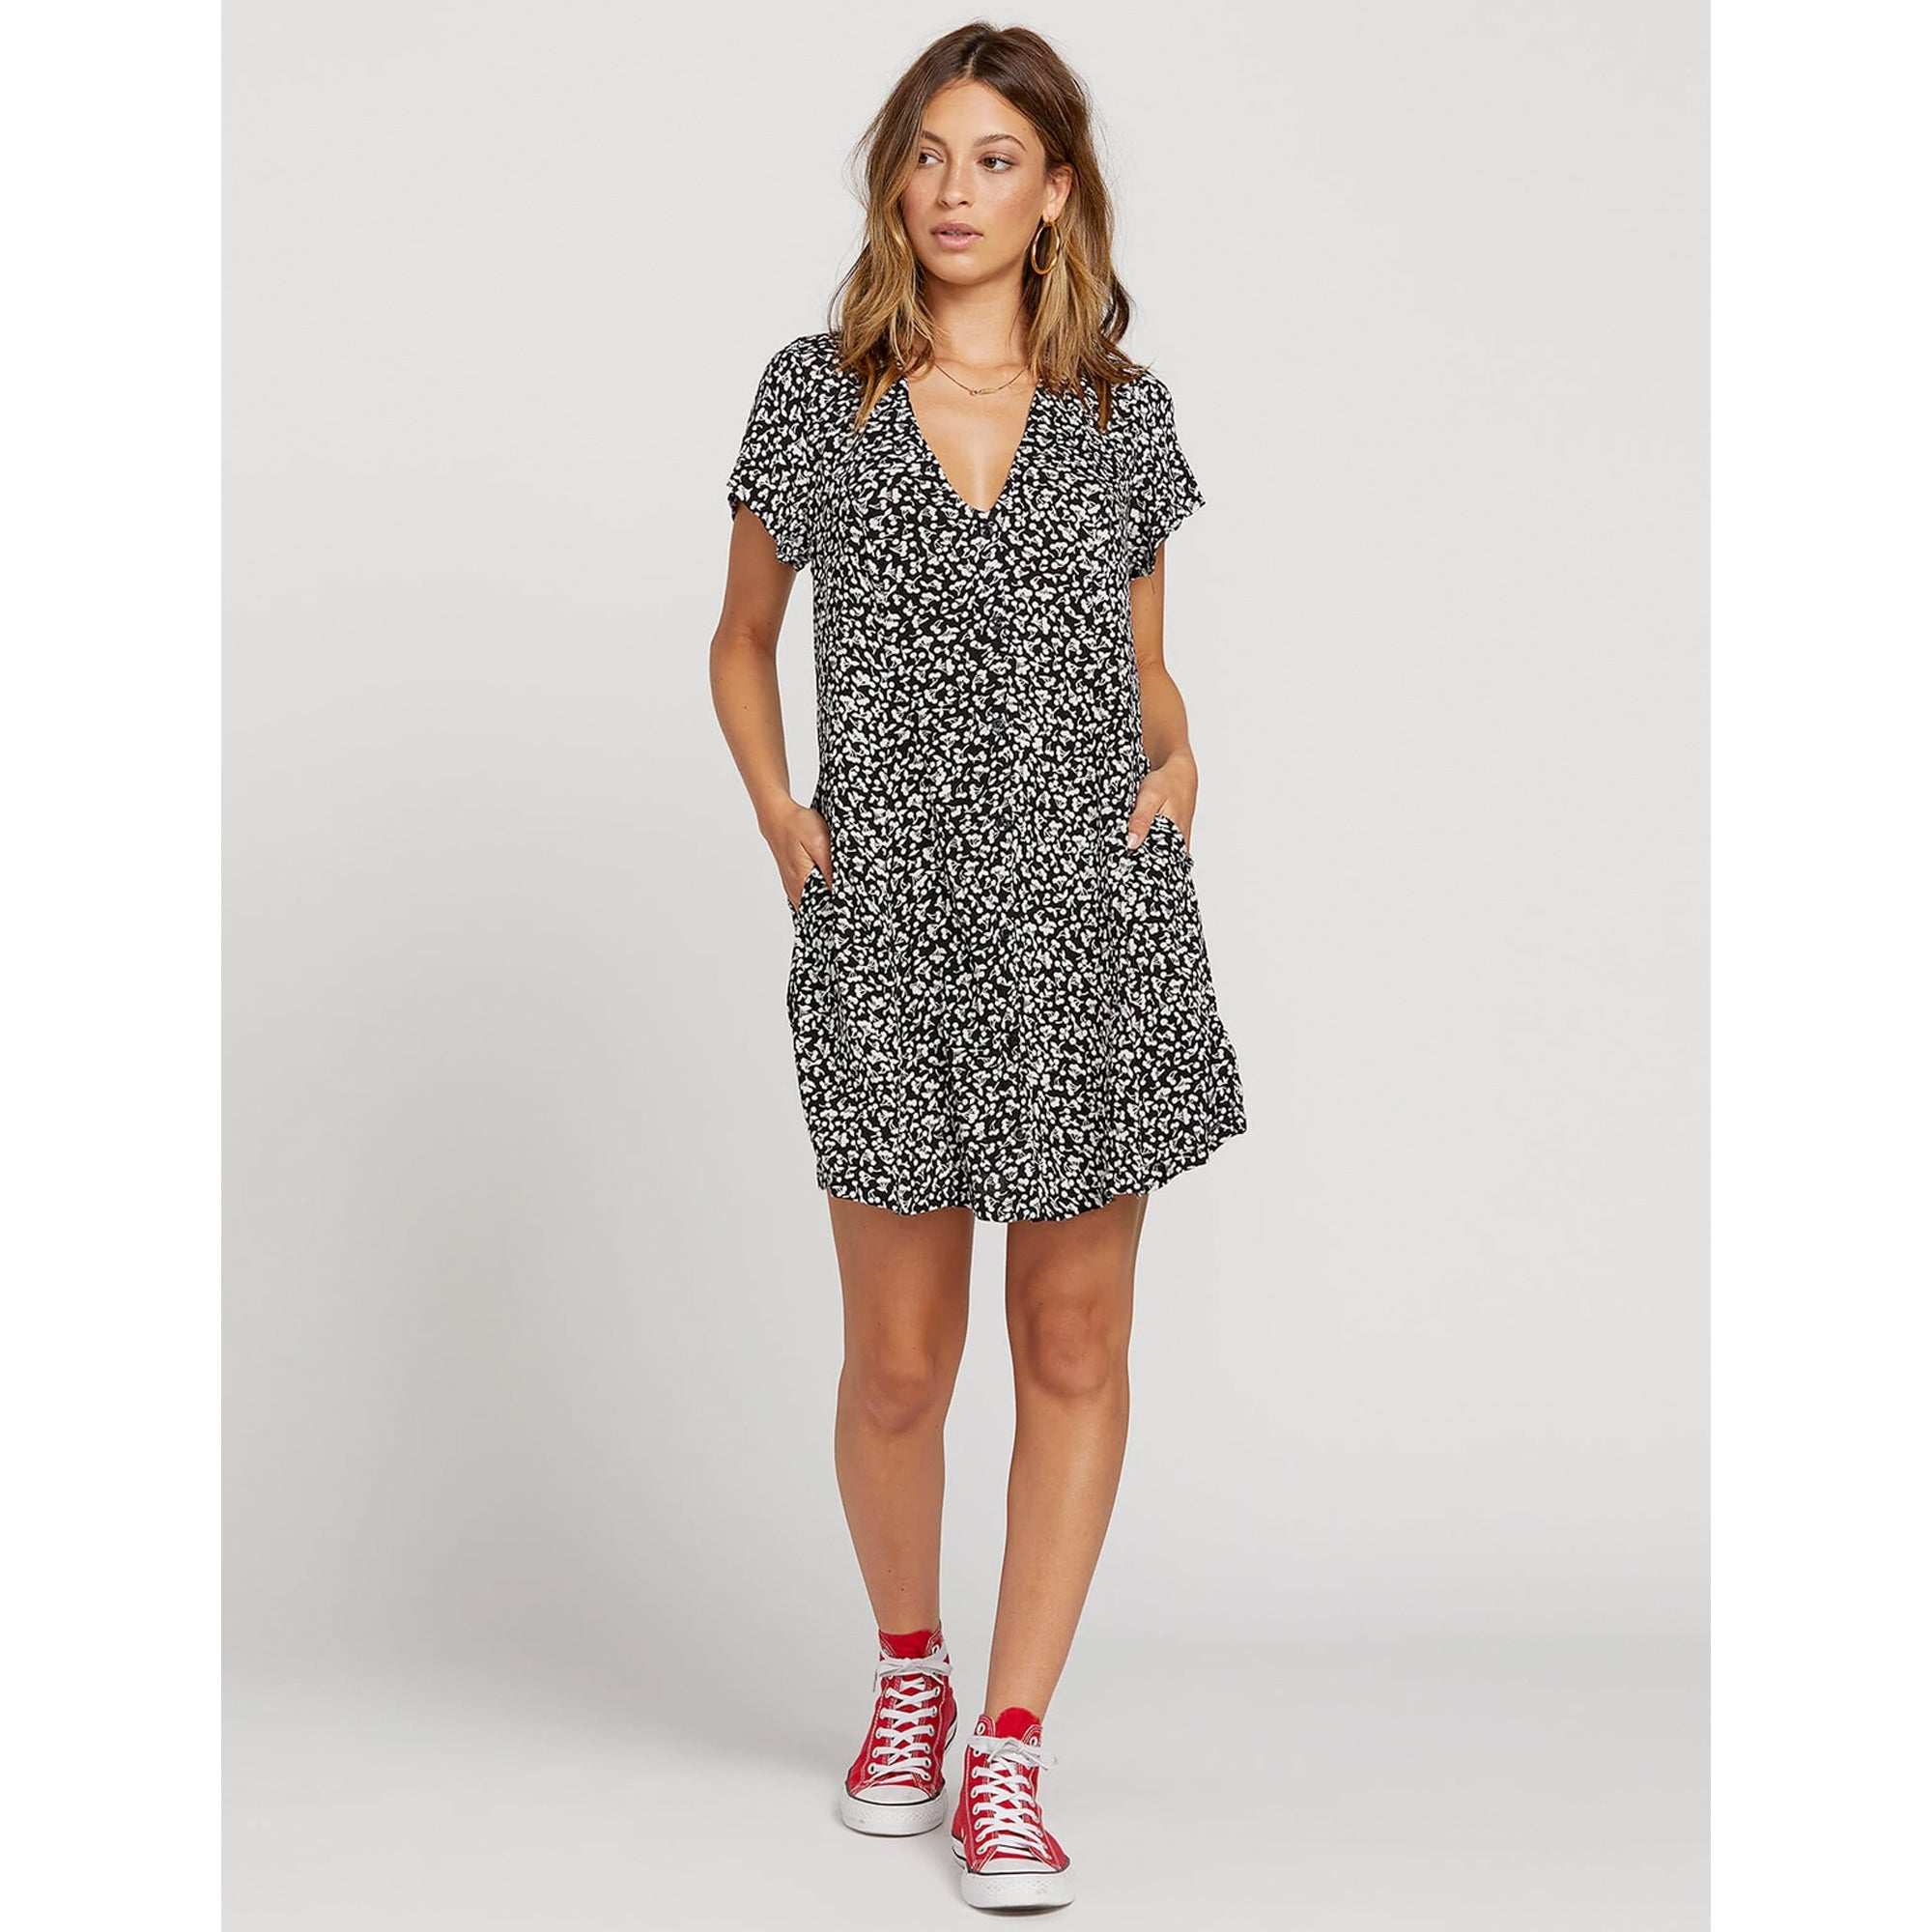 Volcom Now or Now Women's S/S Dress